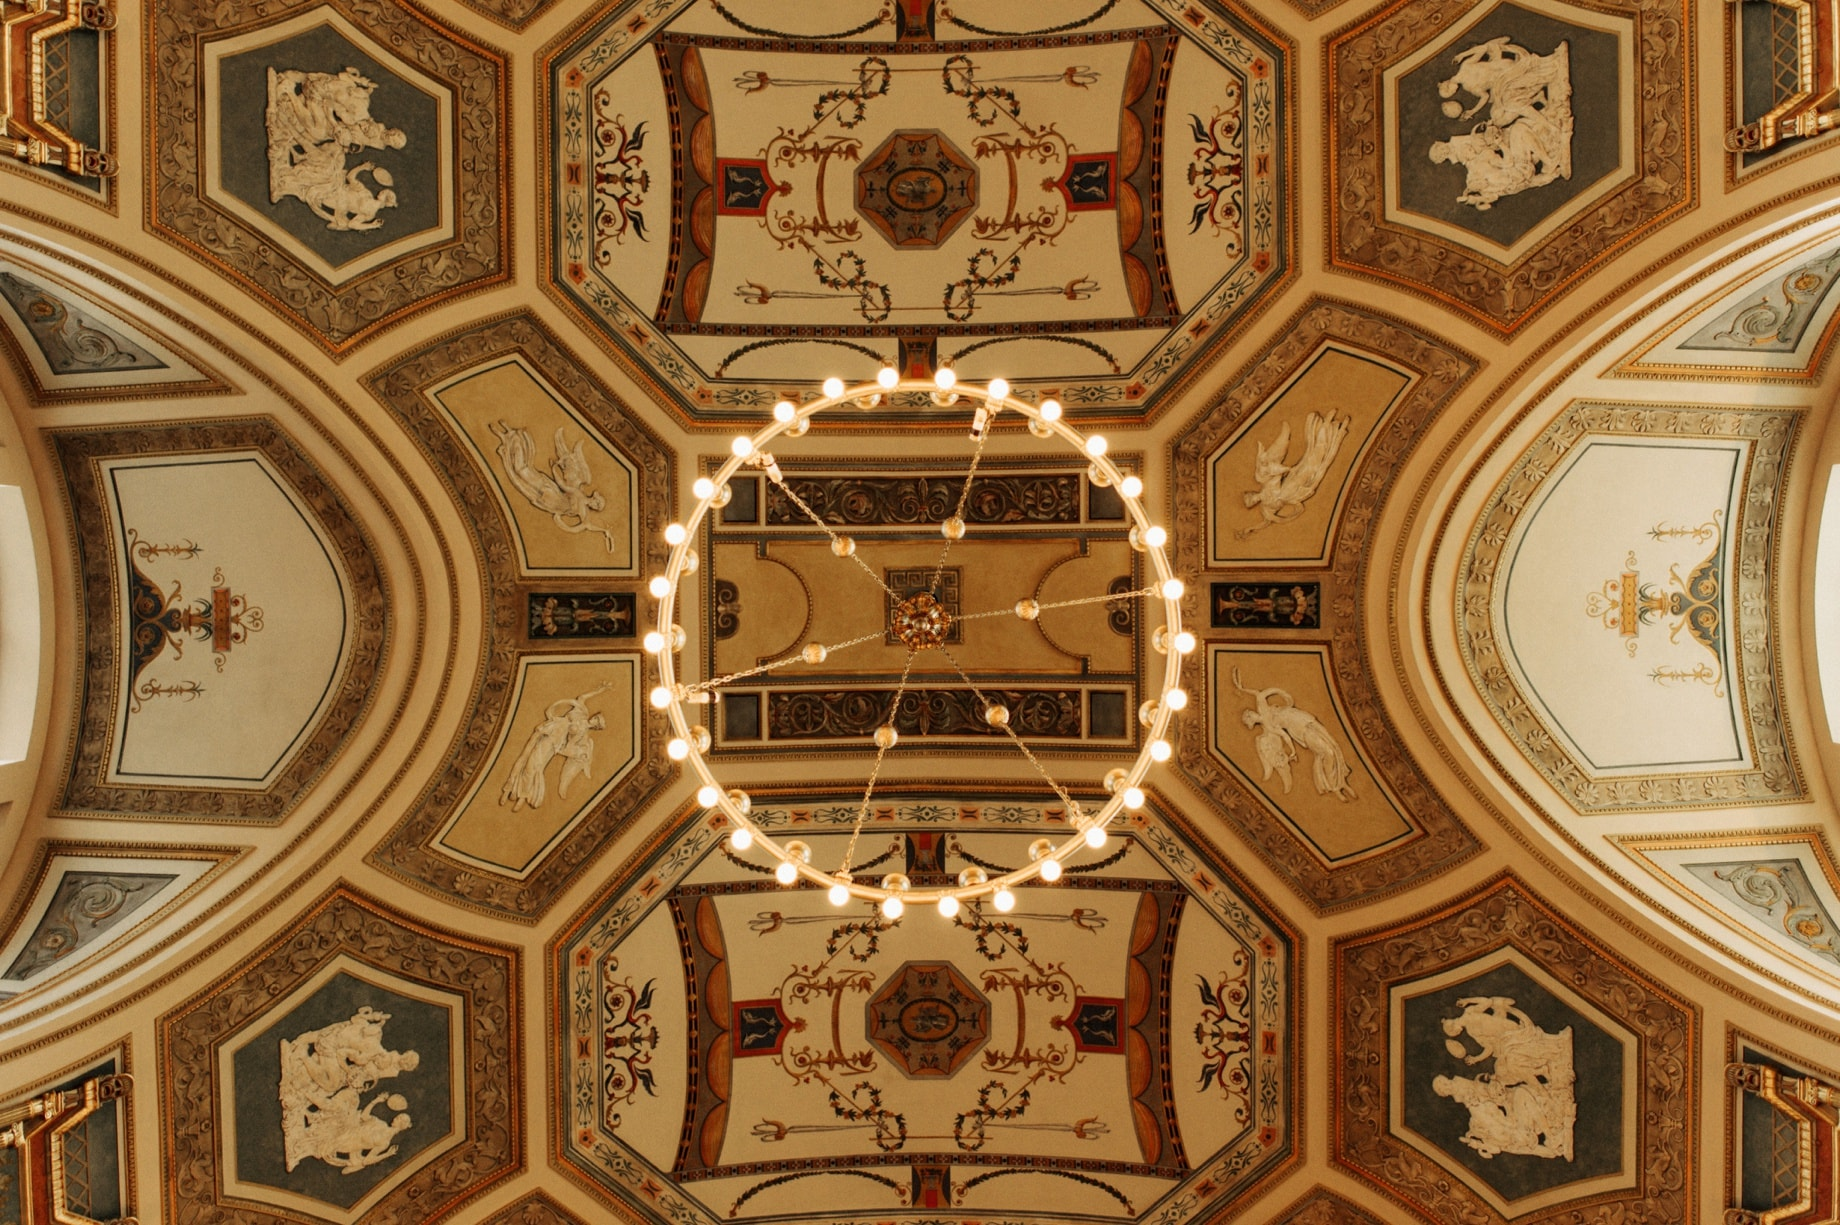 ceiling of the grand hall at the DIA